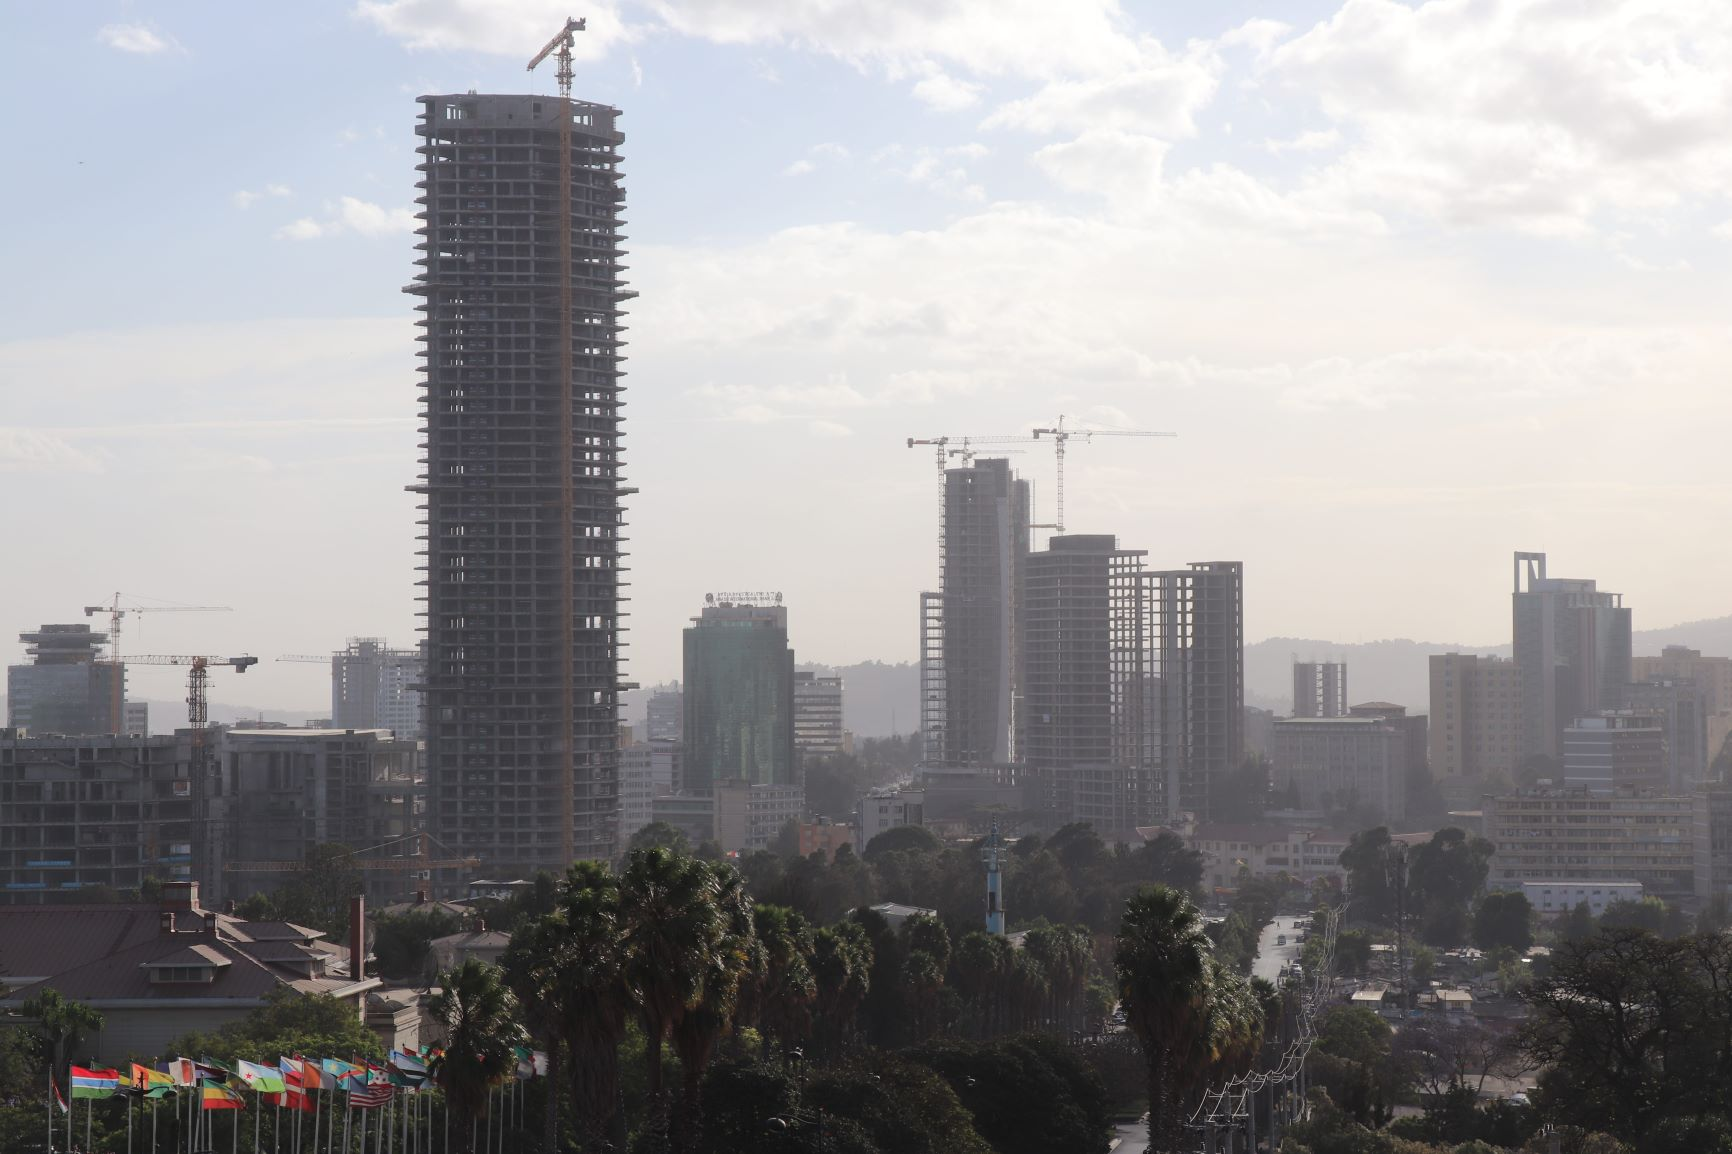 Ethiopia: IMF statement implies private sector involvement can still be avoided